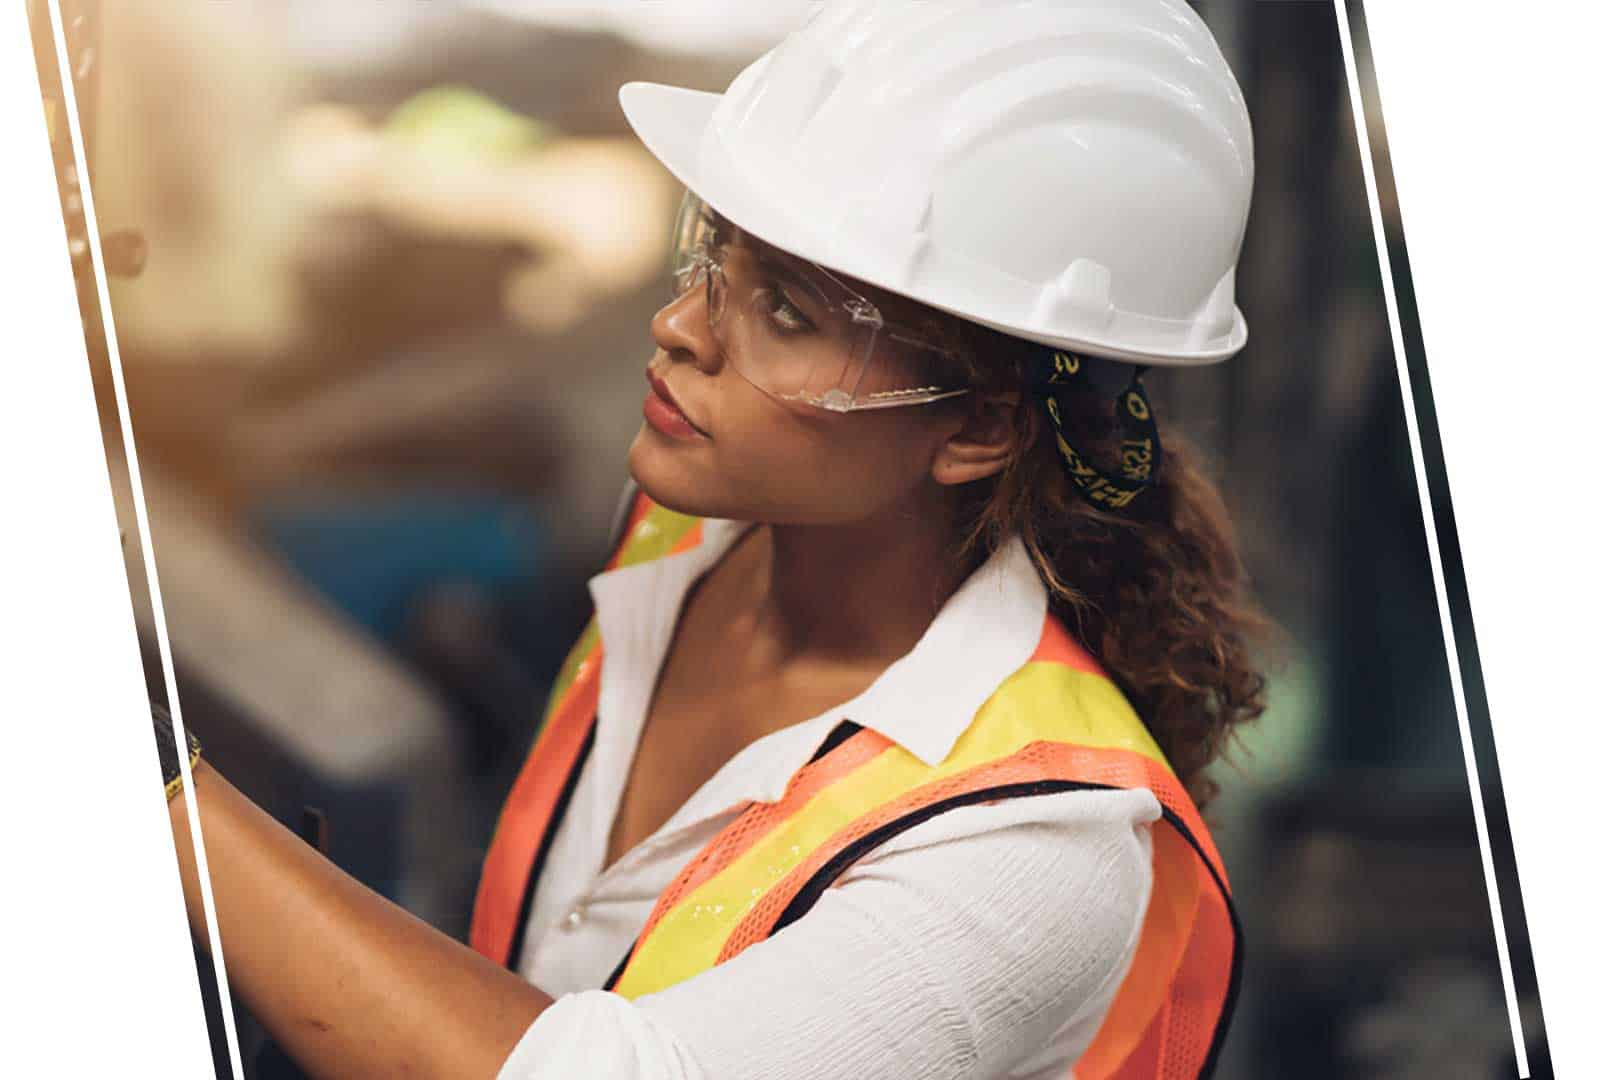 Female construction worker wearing a hardhat and goggles